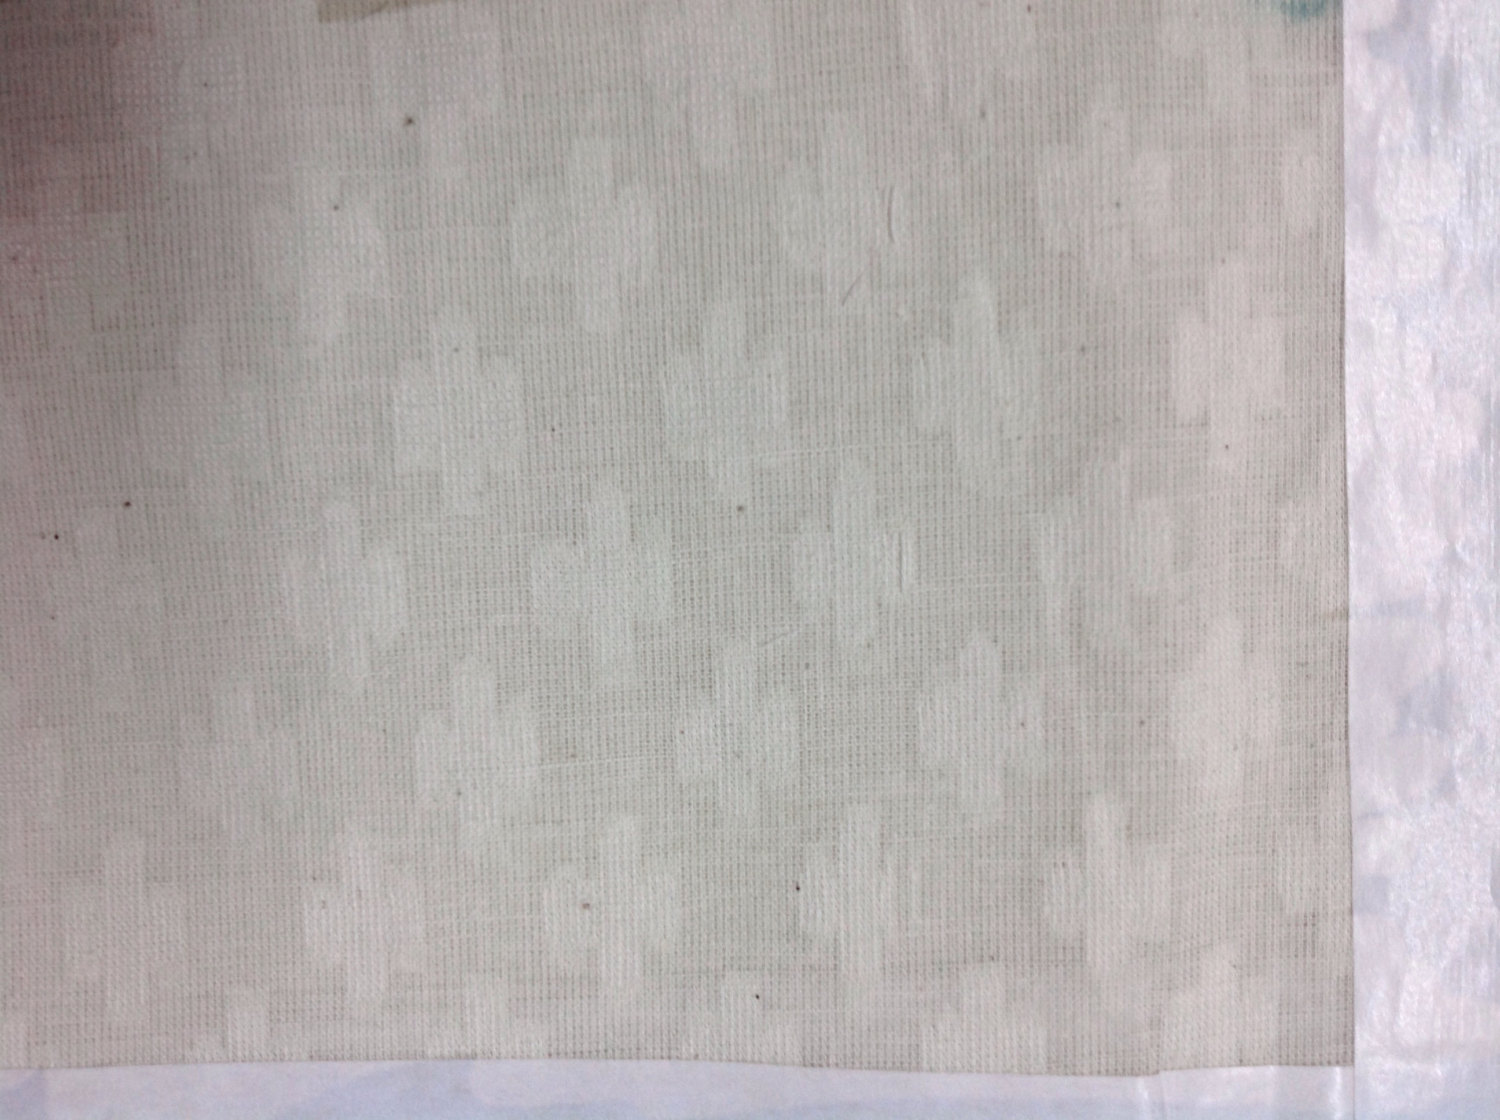 1.00 Yard Fabric | Sheer Fabric Crossword | Cheap Gossamer Fabric Rolls